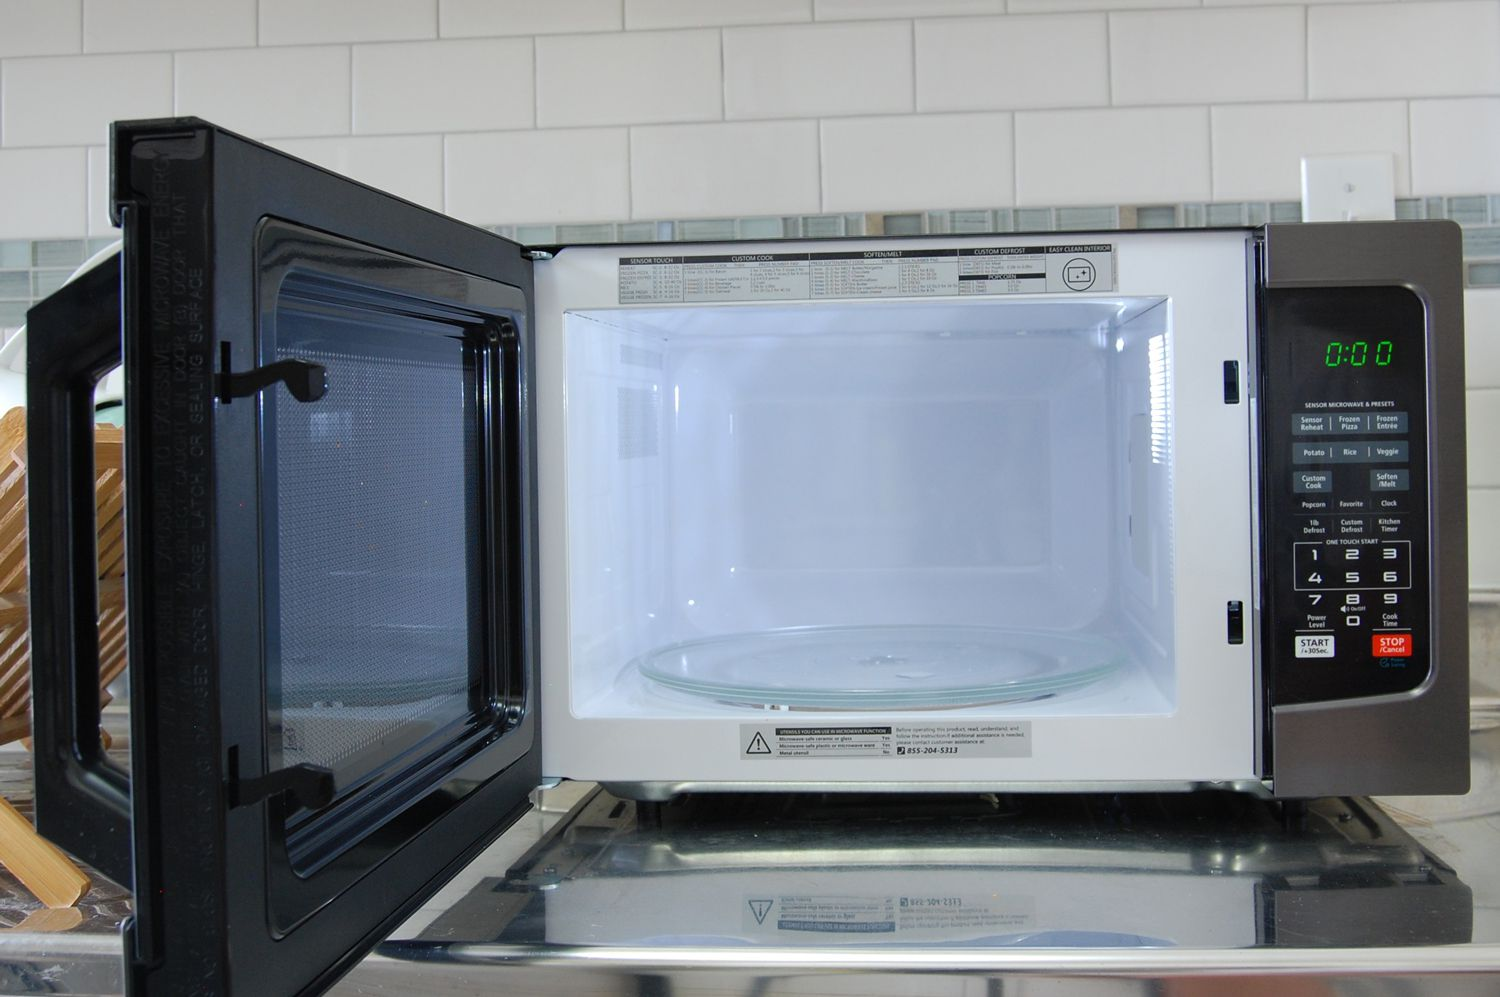 Toshiba EM131A5C-BS Microwave Oven Review: A Practical Choice